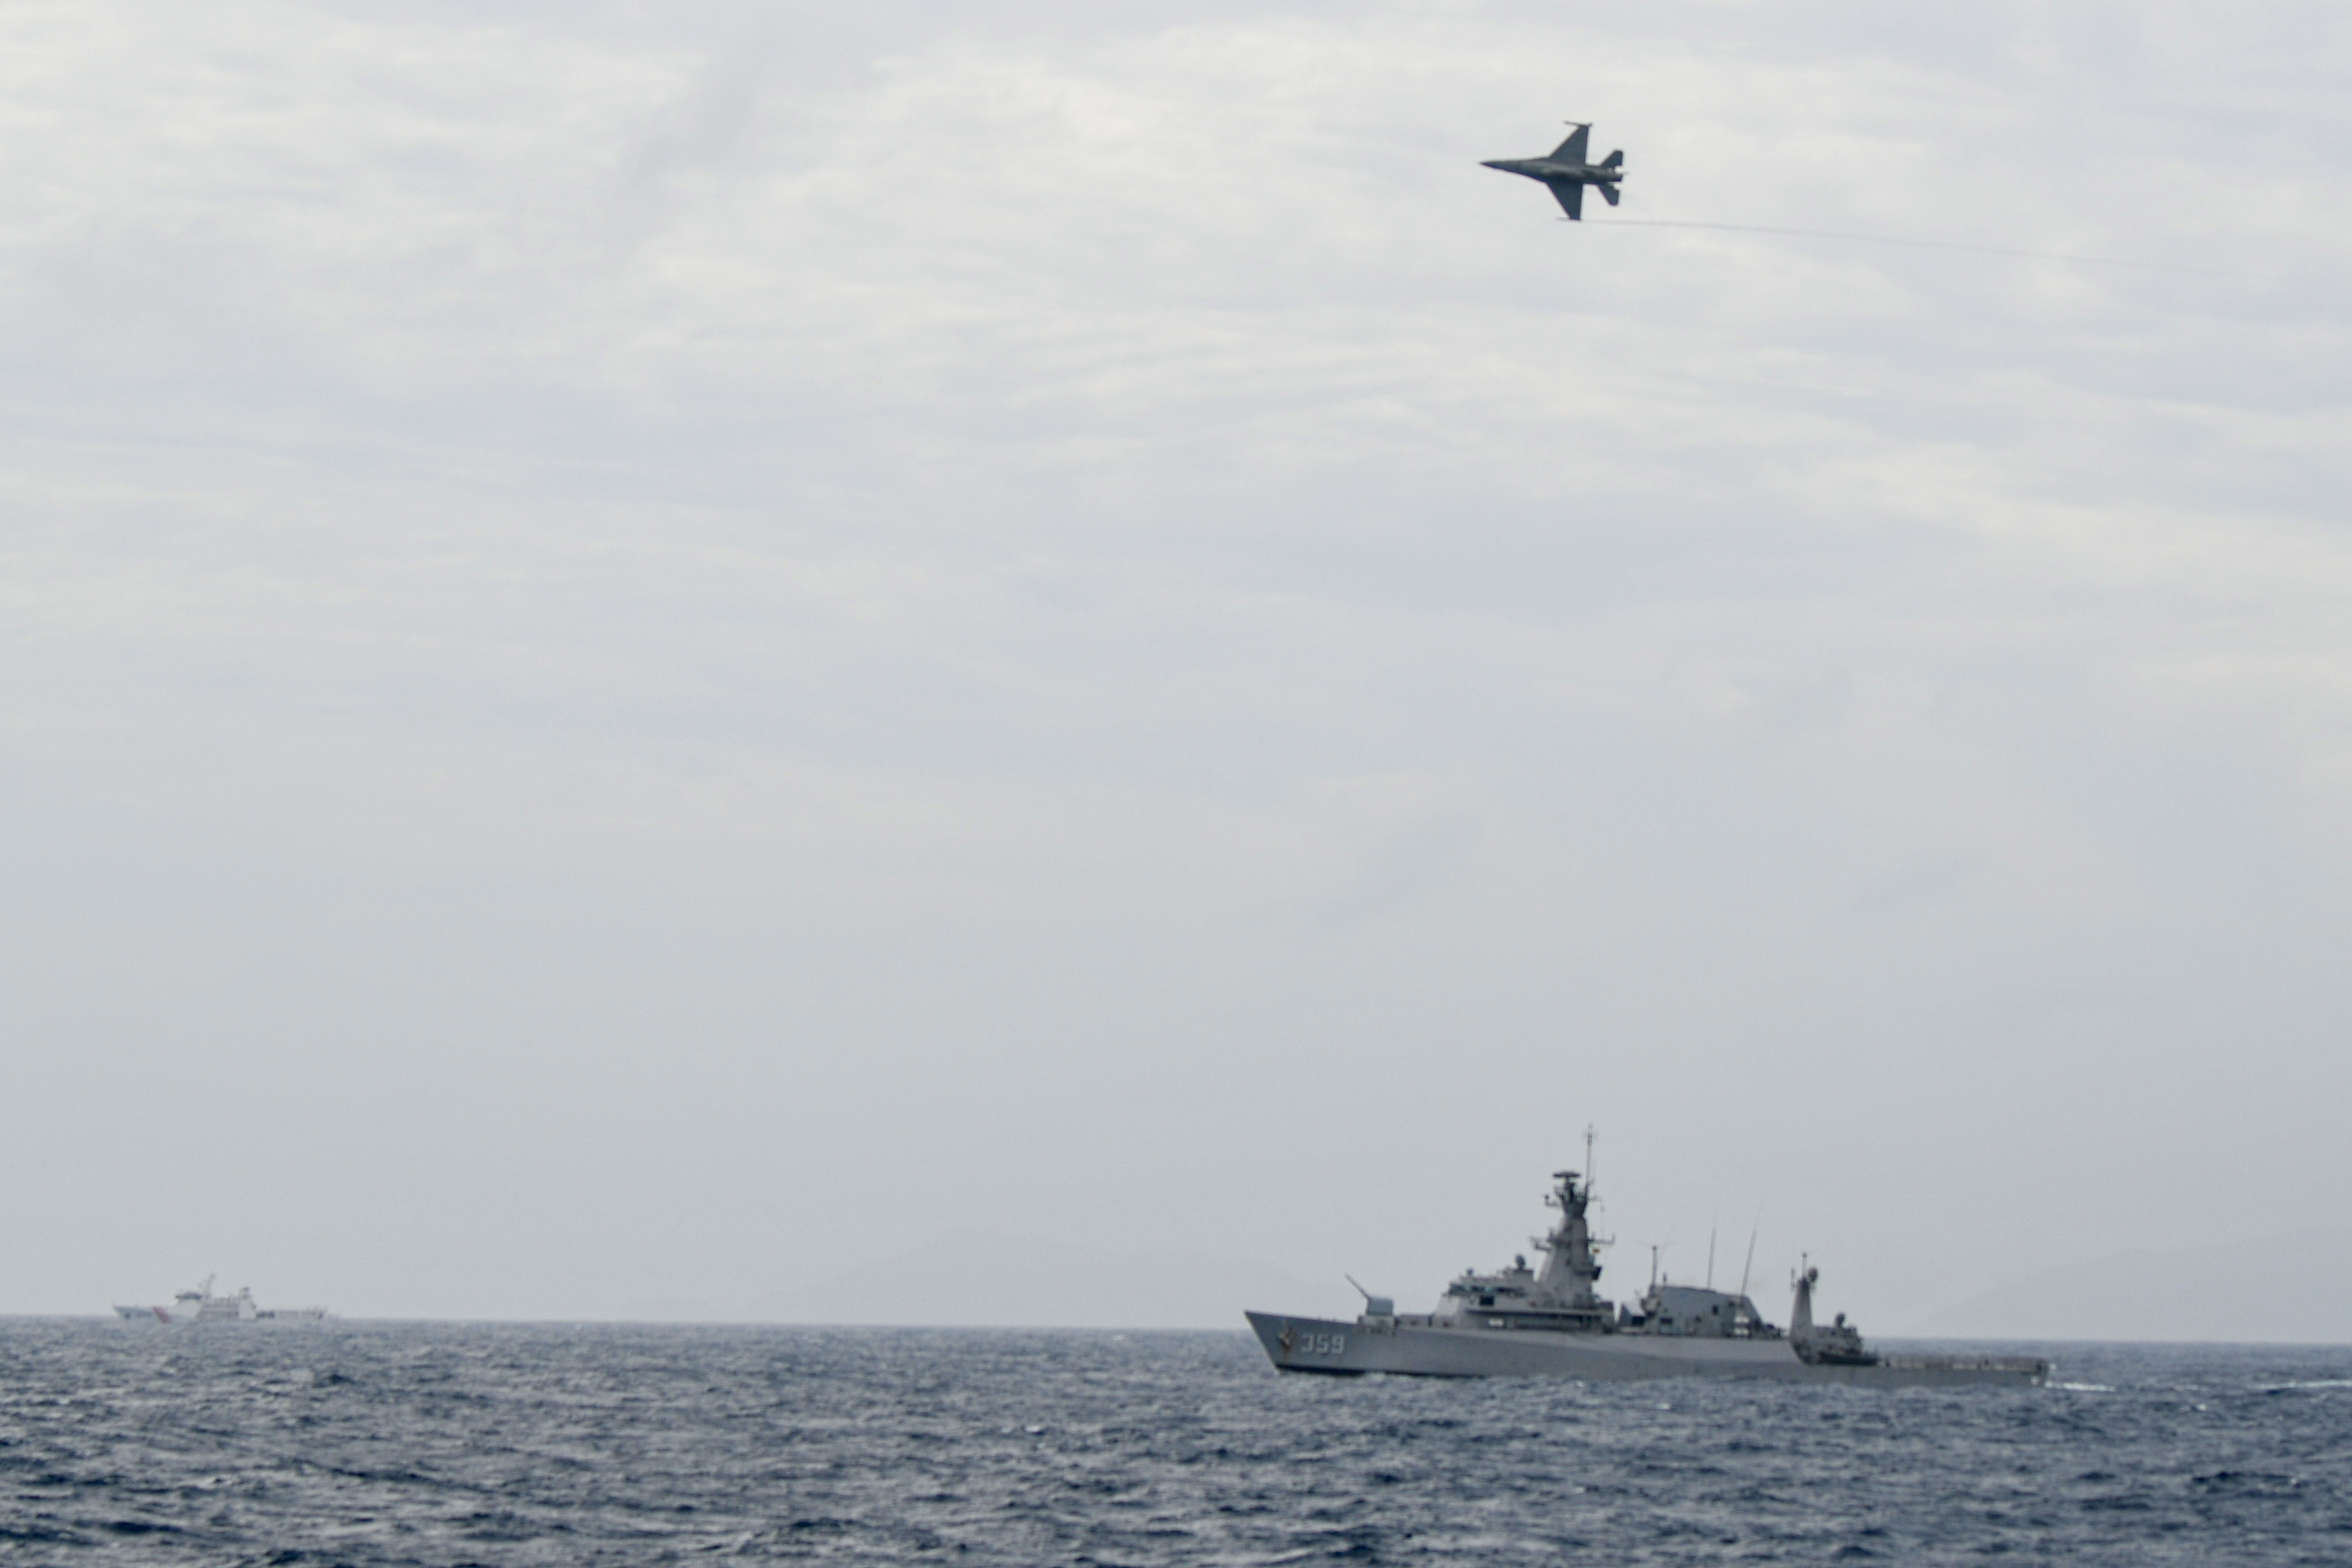 Indonesian Airforce's F-16 Jet Fighter flies over Indonesian navy warship during an operation in Natuna, near the South China Sea, Indonesia, January 10, 2020 in this photo taken by Antara Foto.  Antara Foto/M Risyal Hidayat/via REUTERS